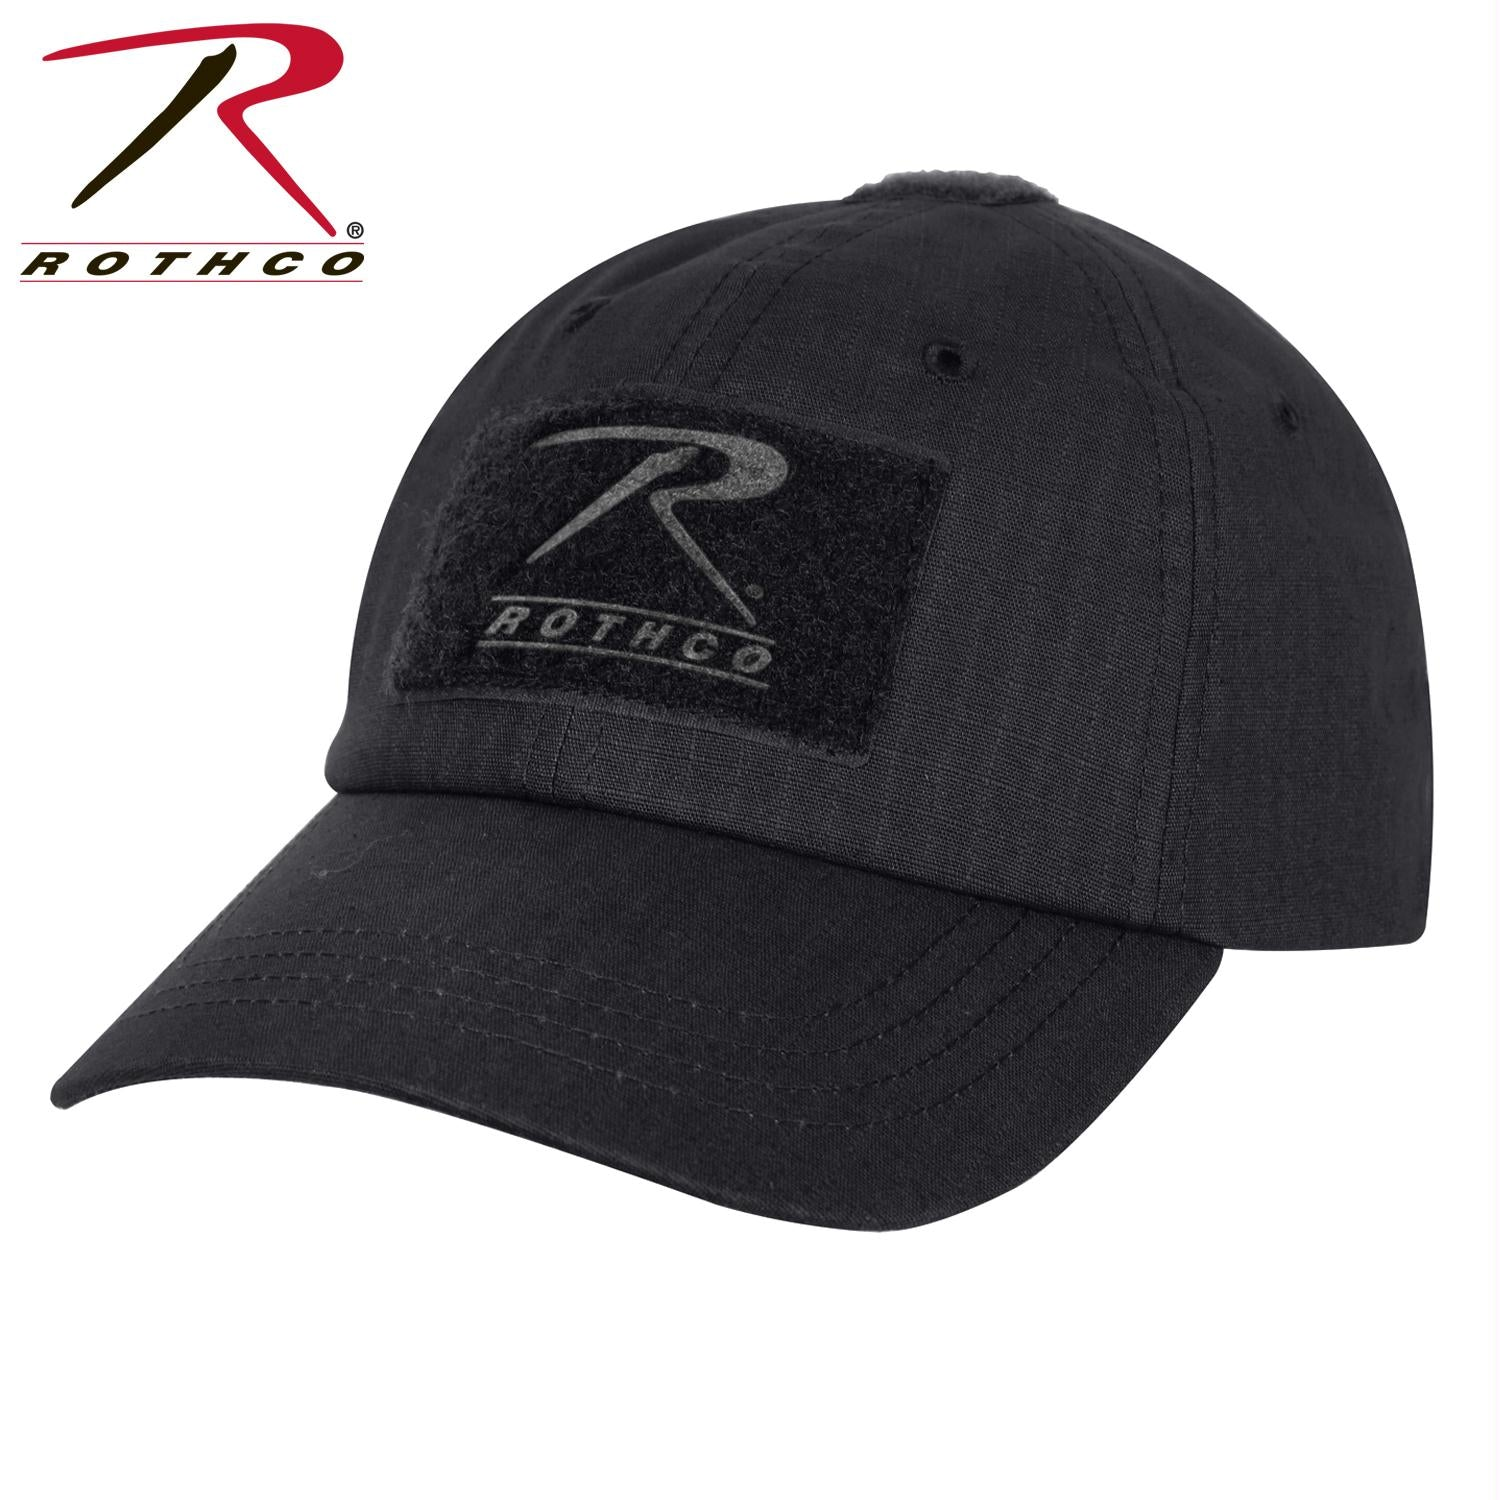 Rothco Rip Stop Operator Tactical Cap - Black / One Size